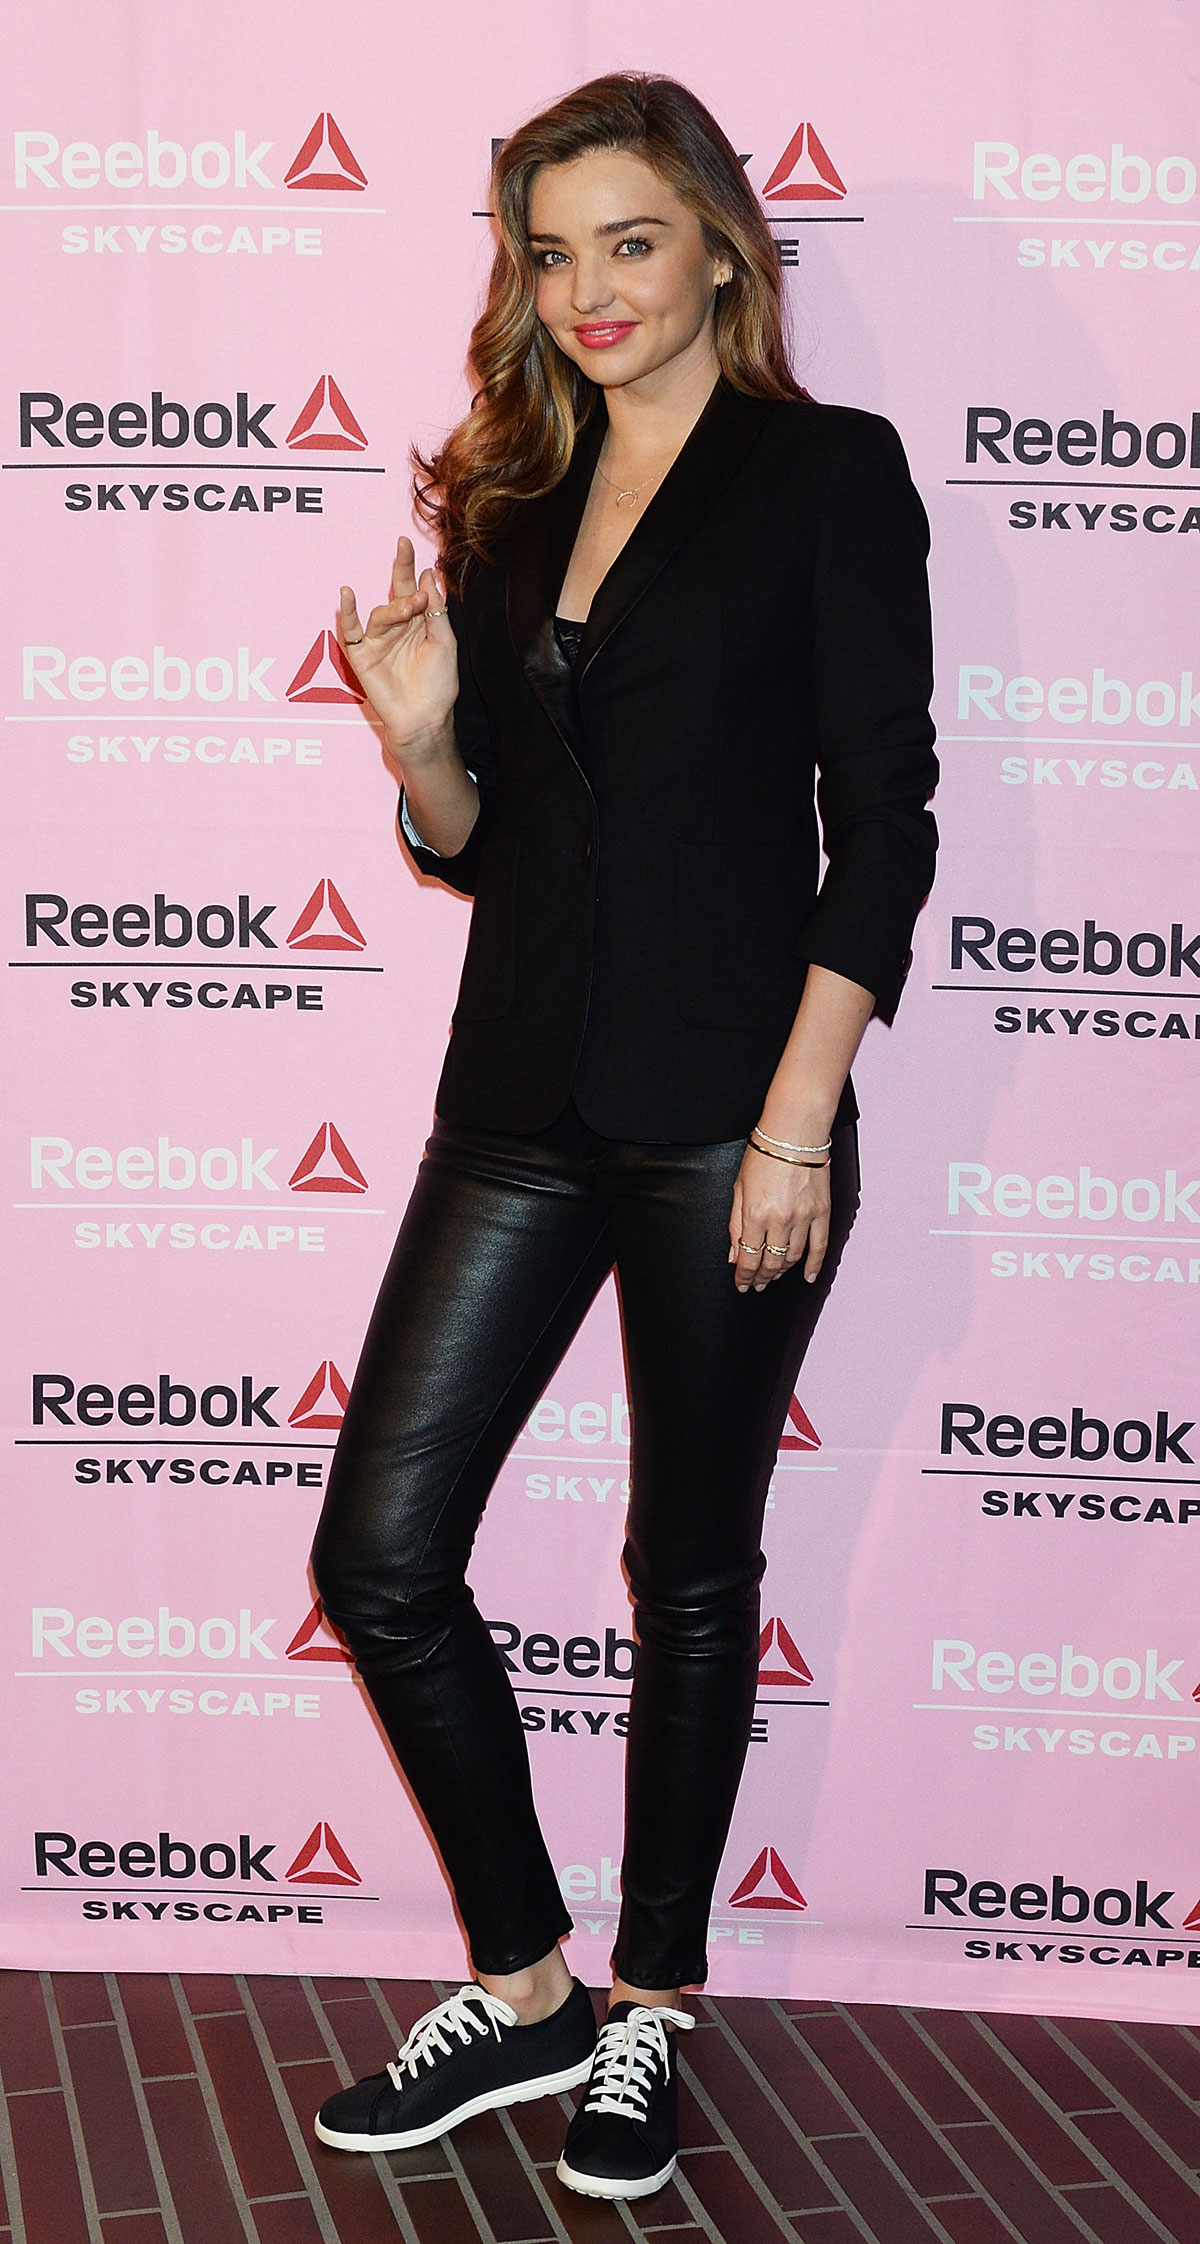 Miranda Kerr attends the Reebok Skyscape party photocall